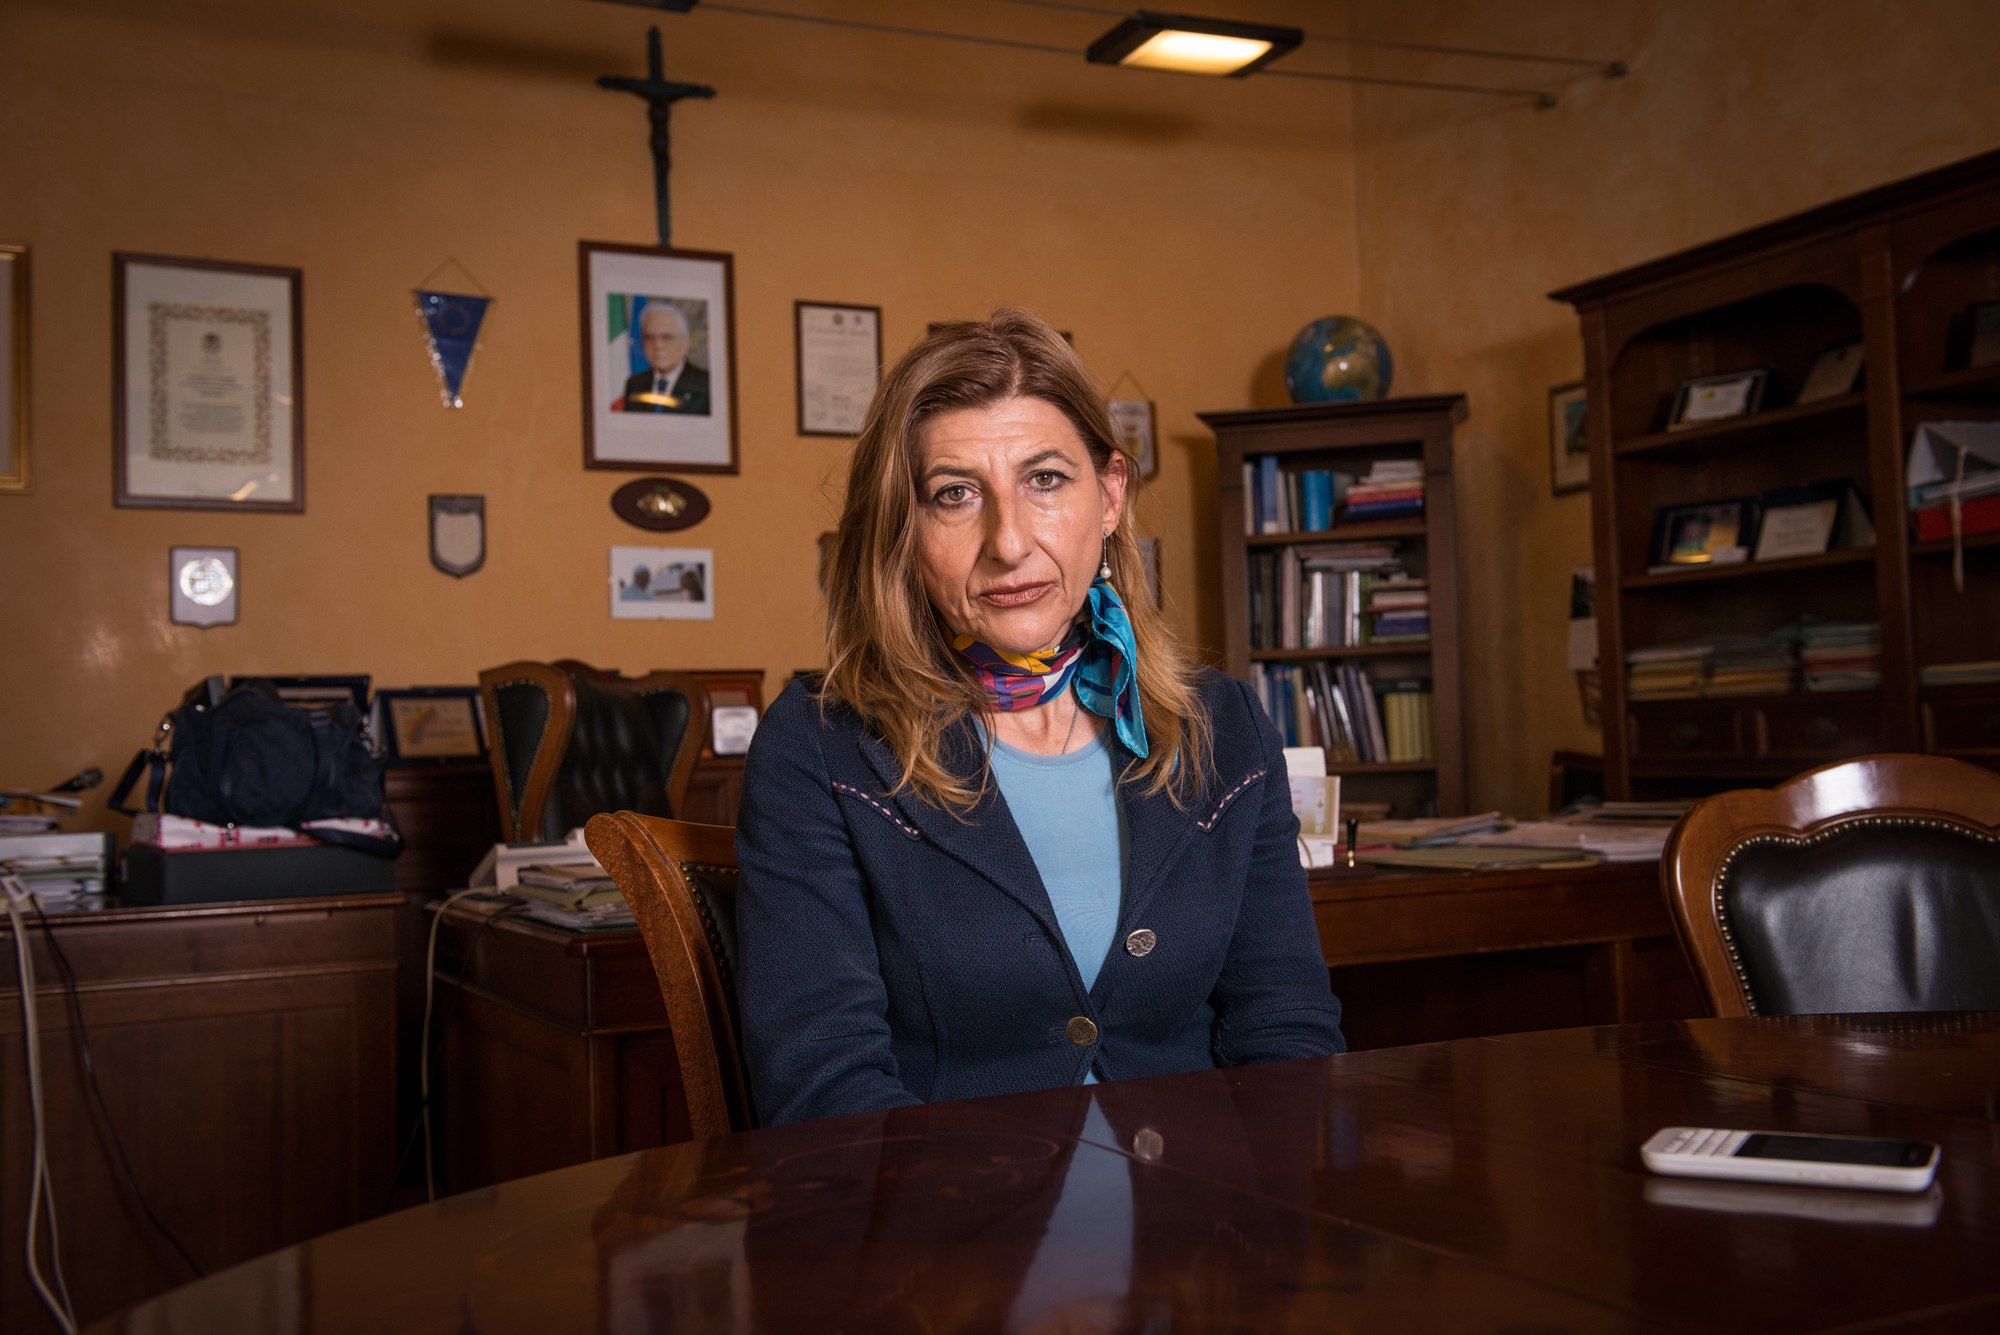 Giusi Nicolini, mayor of Lampedusa, has seen refugees greatly outnumber the Italian Population of her little Island, and has not lost her compassion for the people who undertake this perilous journey.